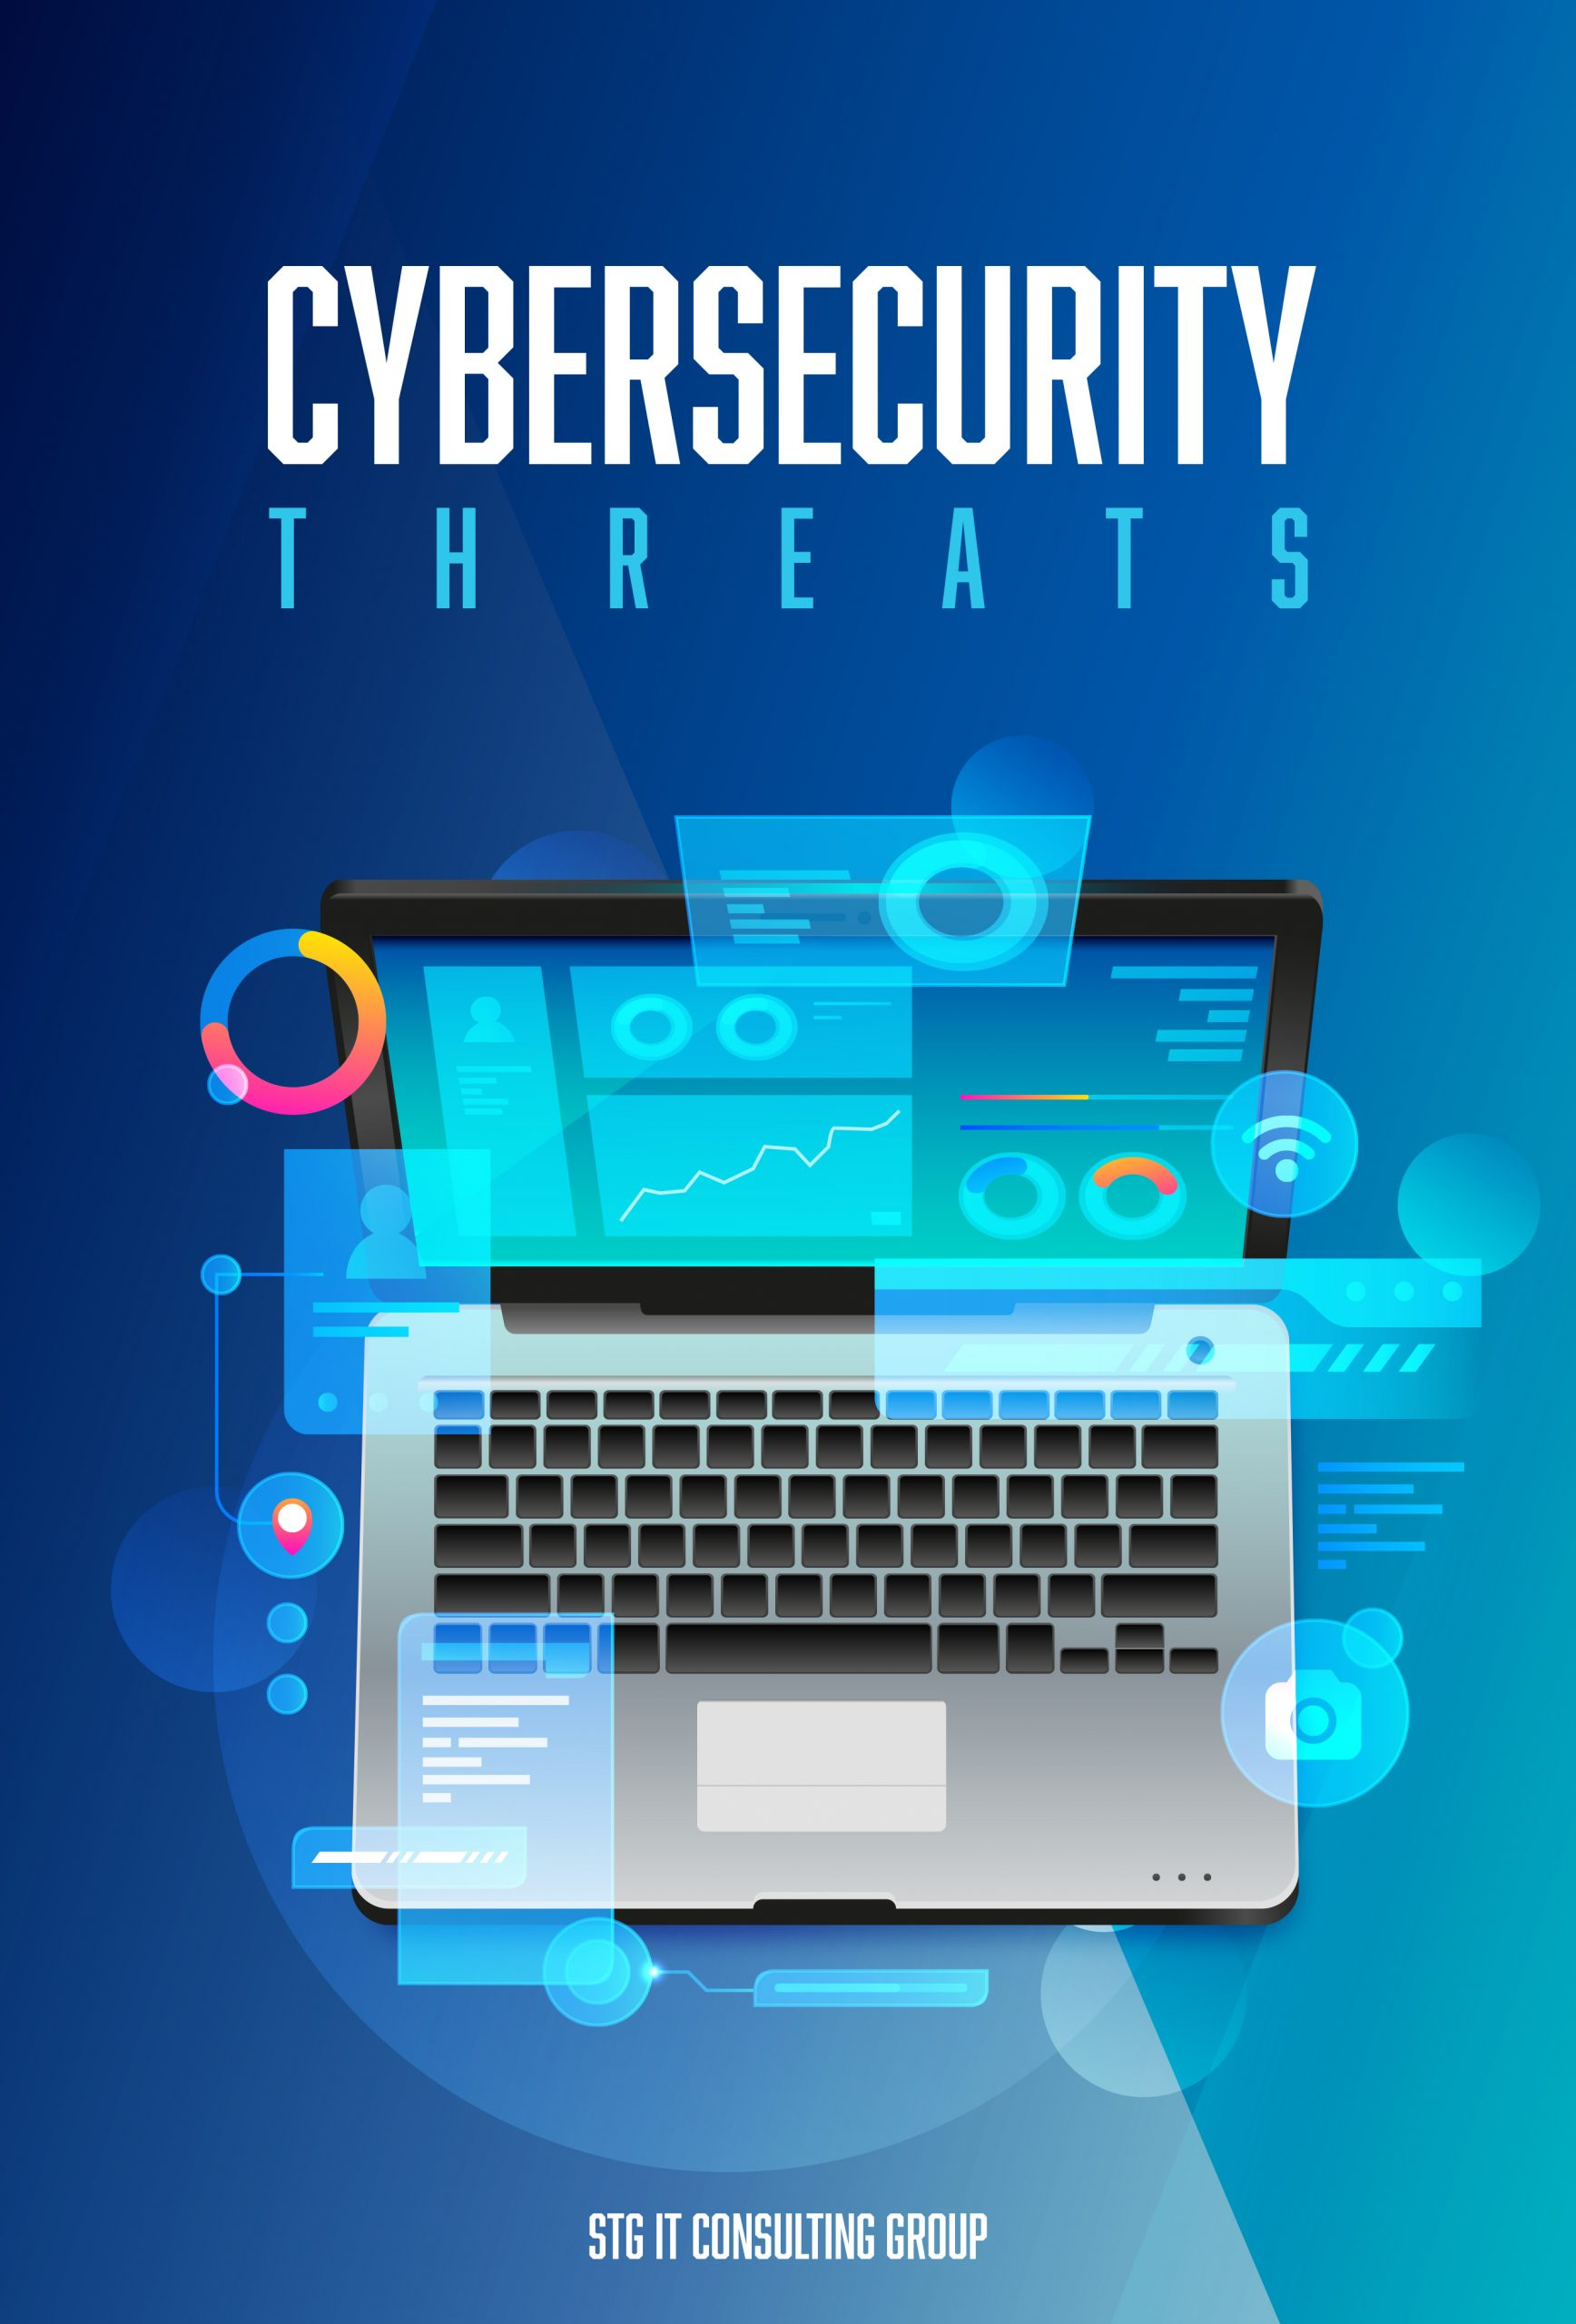 Top 5 Cybersecurity Threats for Businesses in 2021